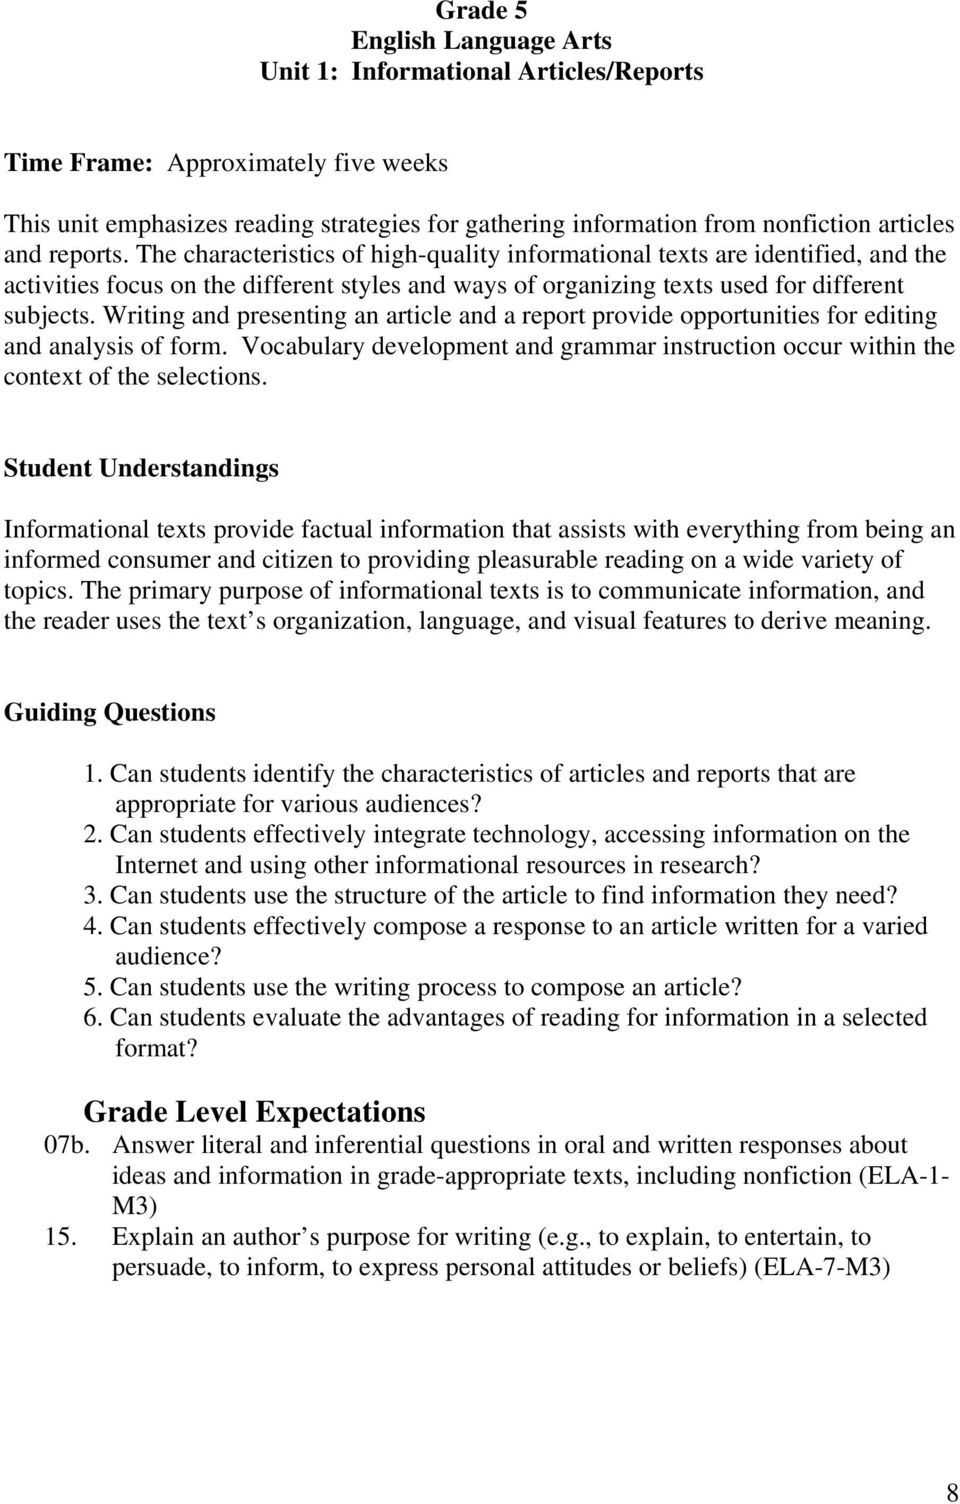 Writing and presenting an article and a report provide opportunities for editing and analysis of form. Vocabulary development and grammar instruction occur within the context of the selections.